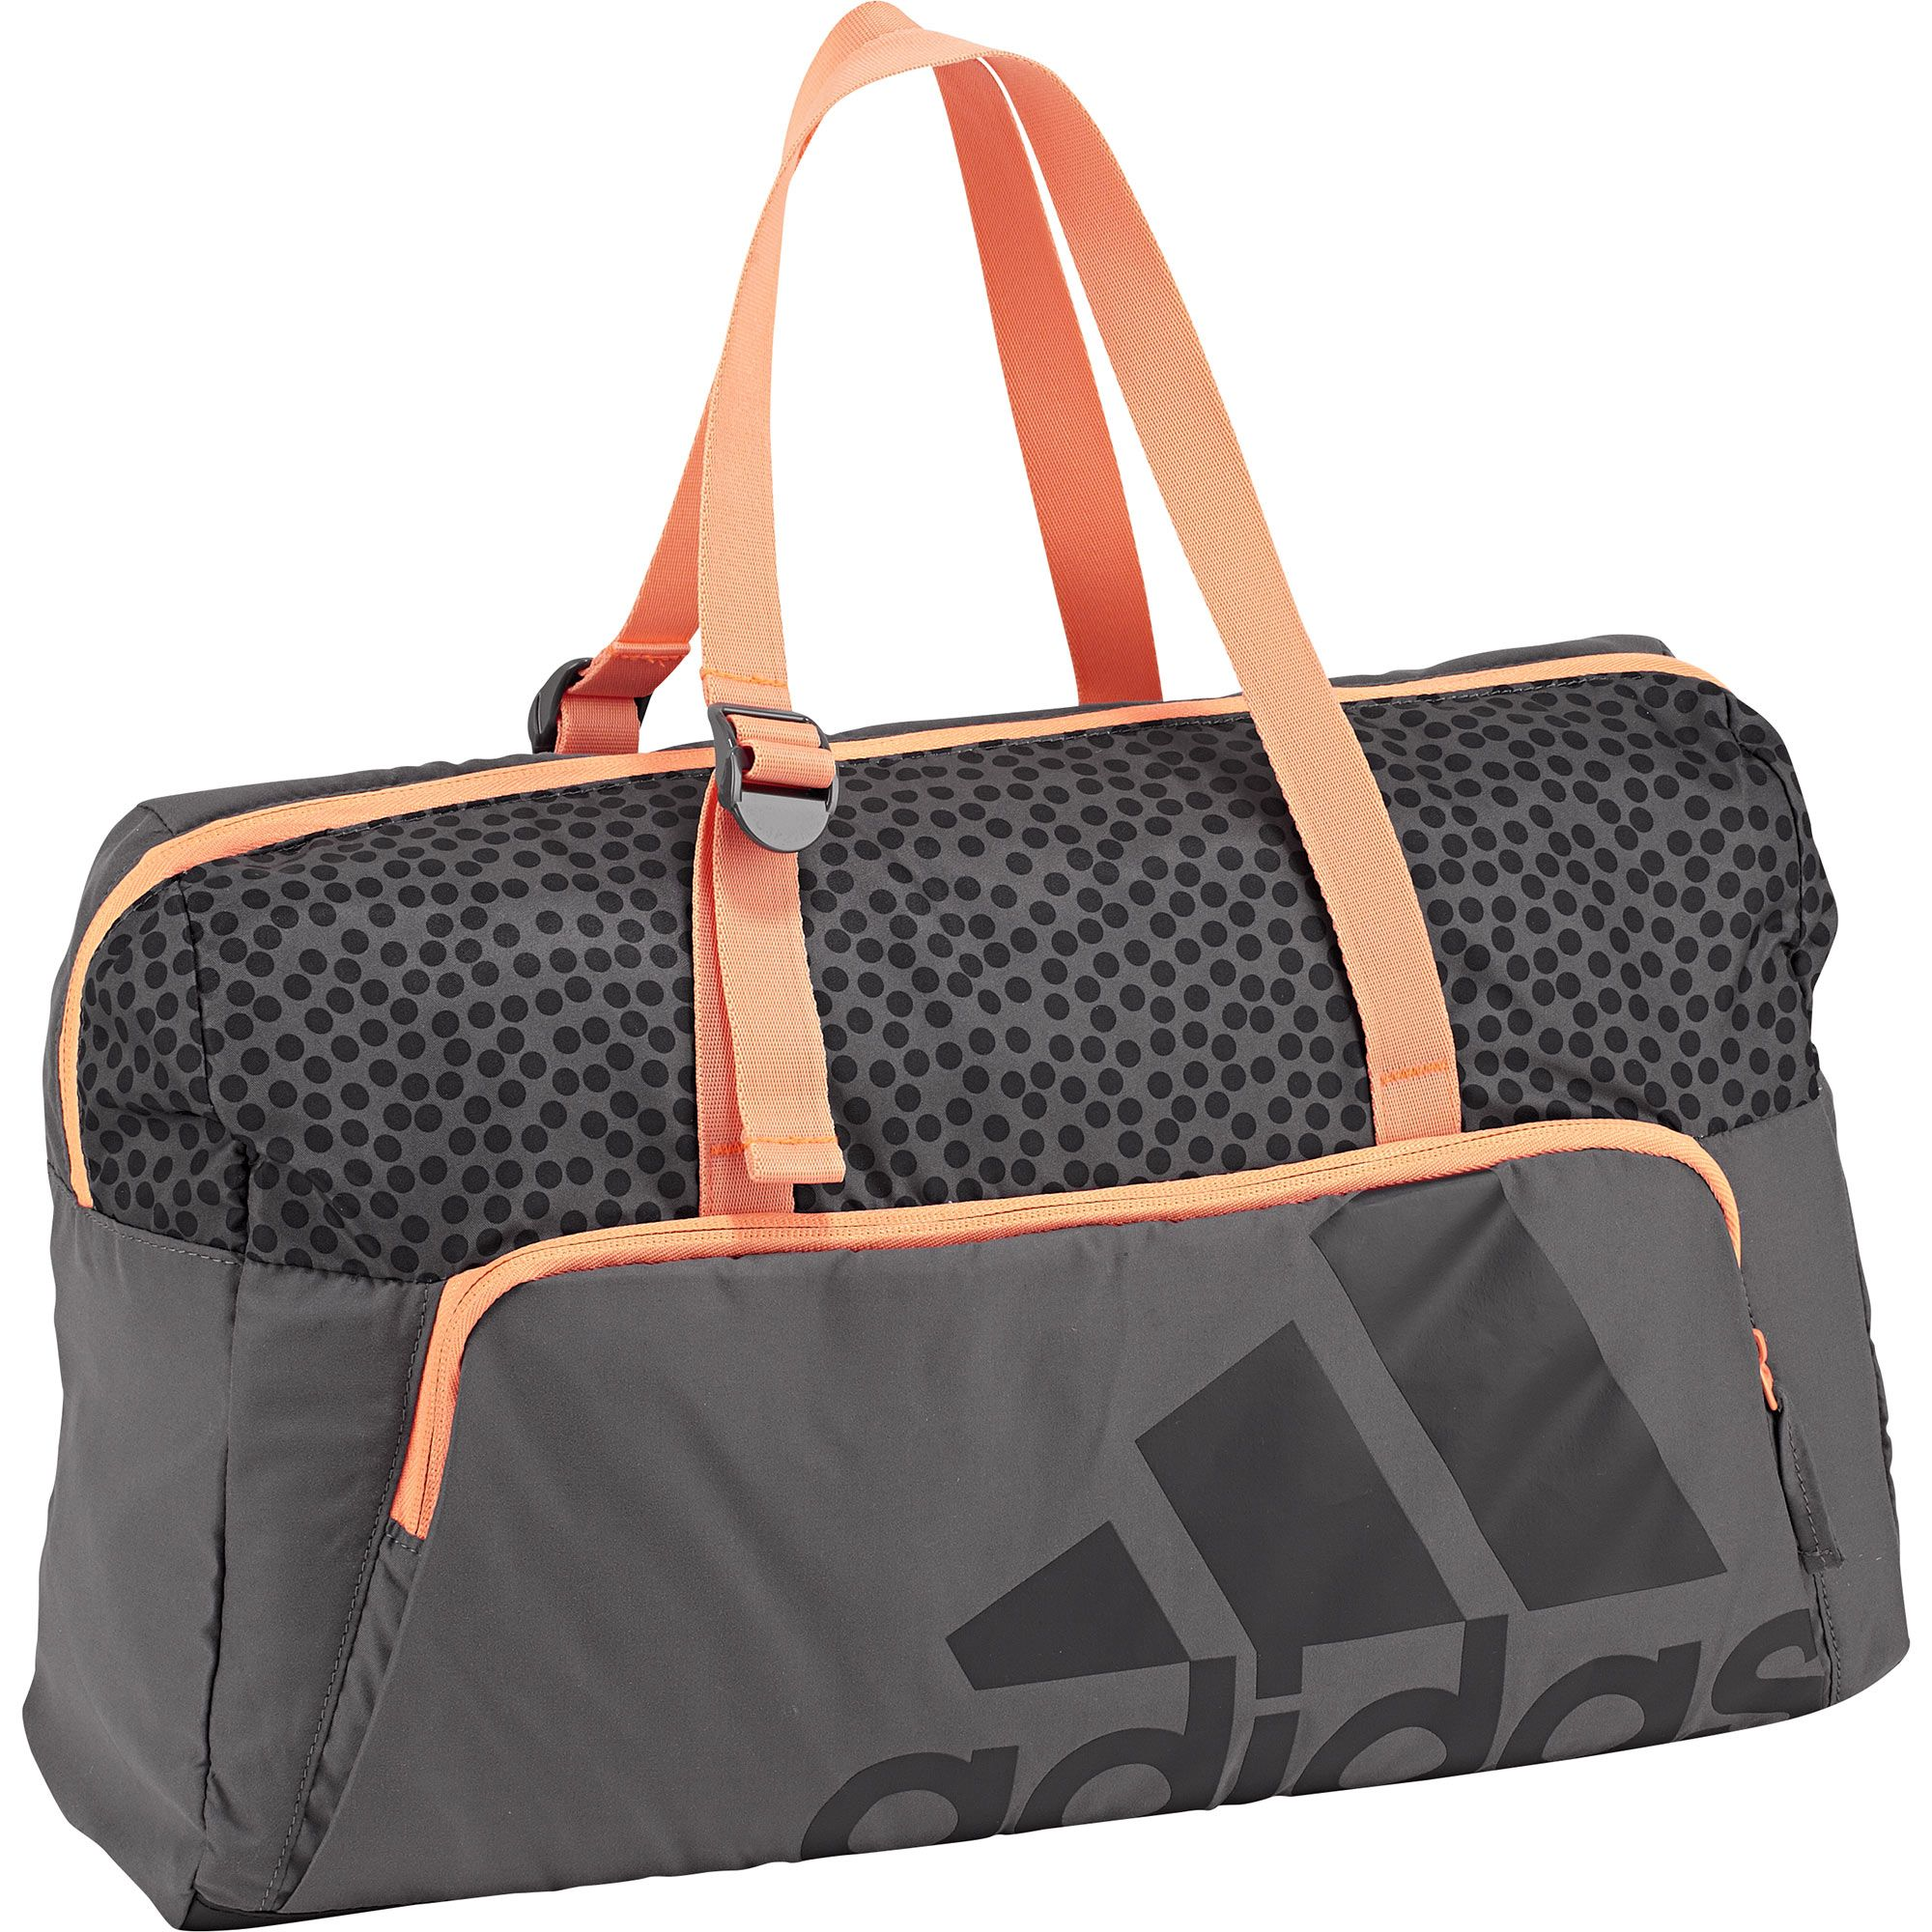 Bolsa Next Gen Boston Athlete Mujer adidas  2cadb7eb3c700